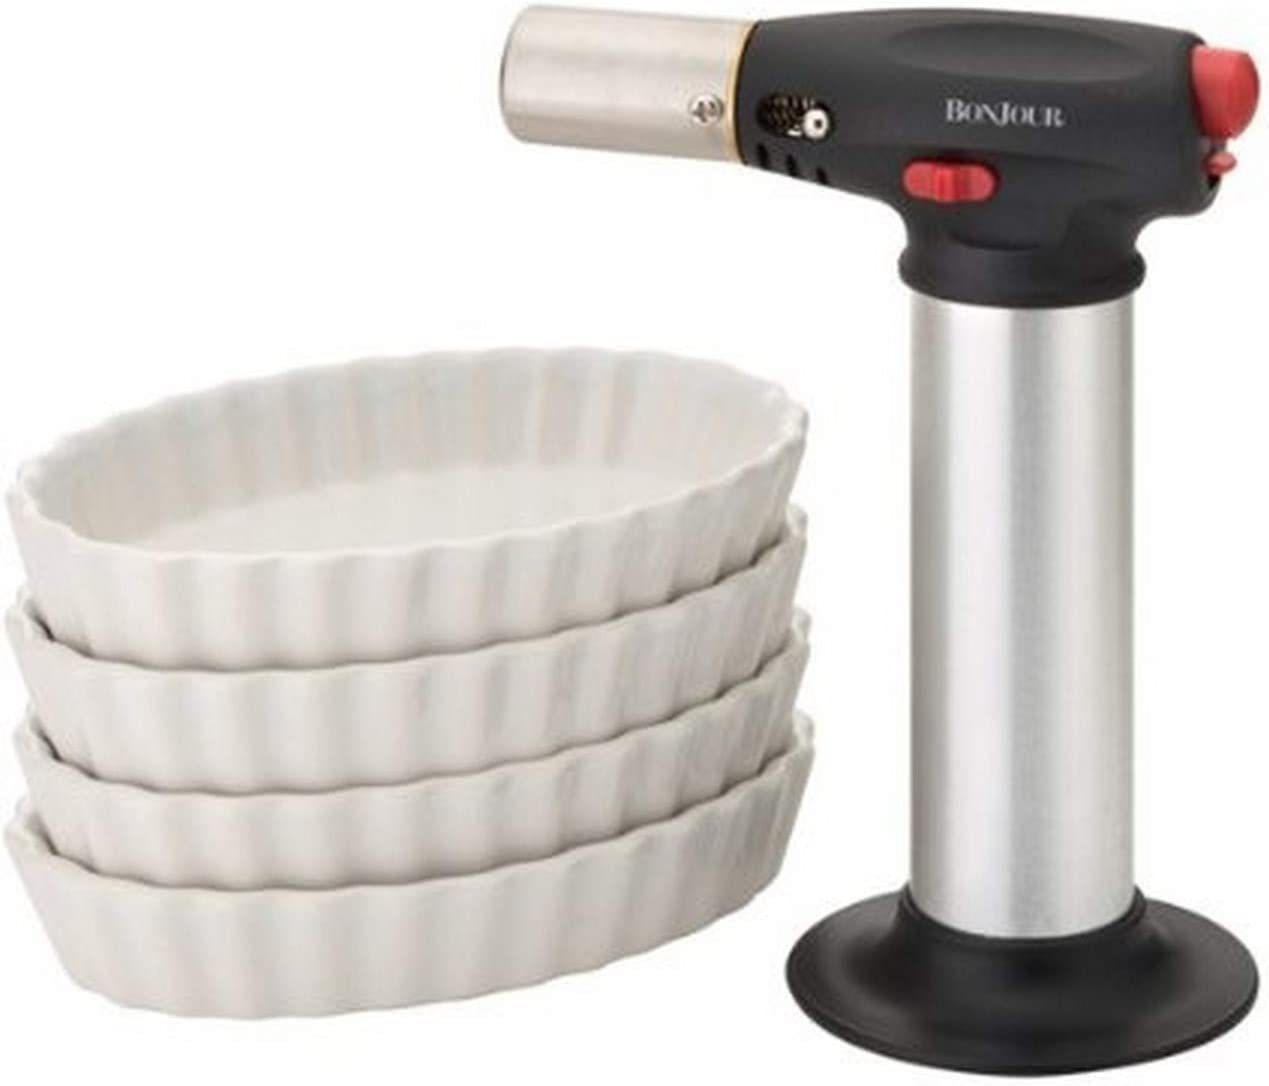 BonJour Chef's Tools Butane Crème Brûlée Torch and Porcelain Ramekin Set, 5-Piece, Stainless Steel, One Size - 53489